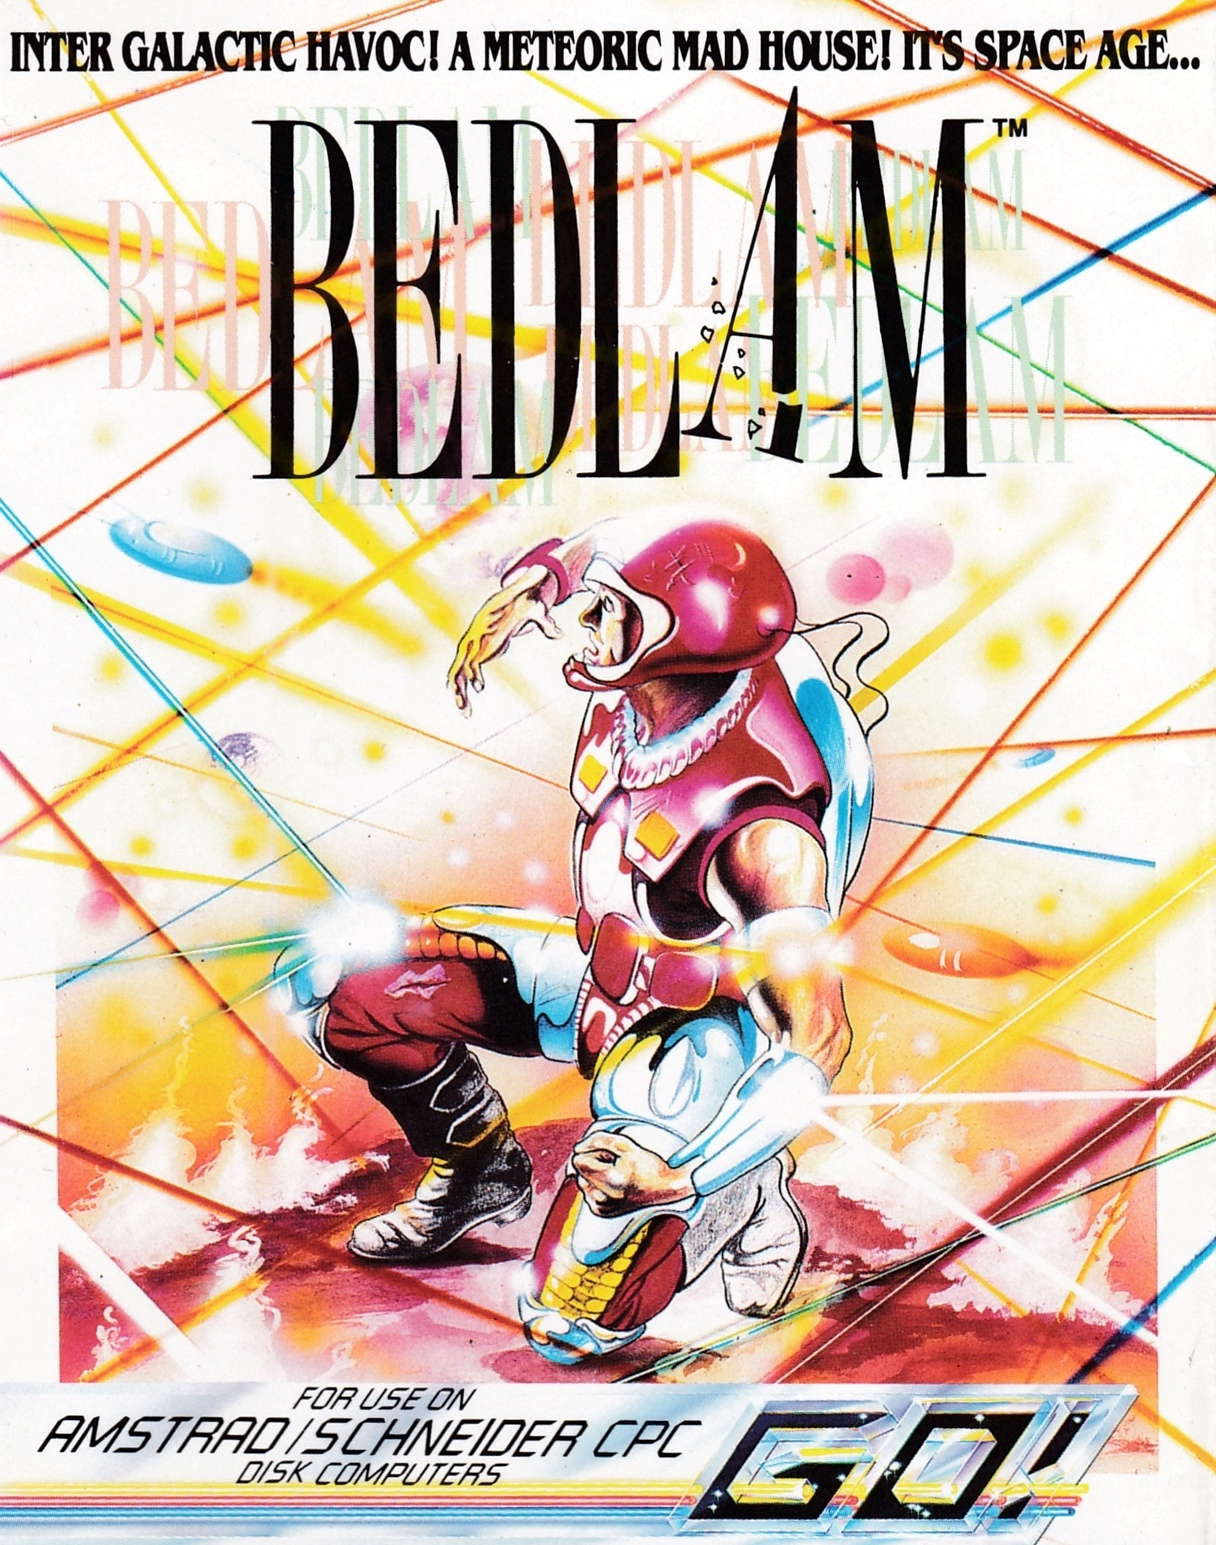 cover of the Amstrad CPC game Bedlam  by GameBase CPC